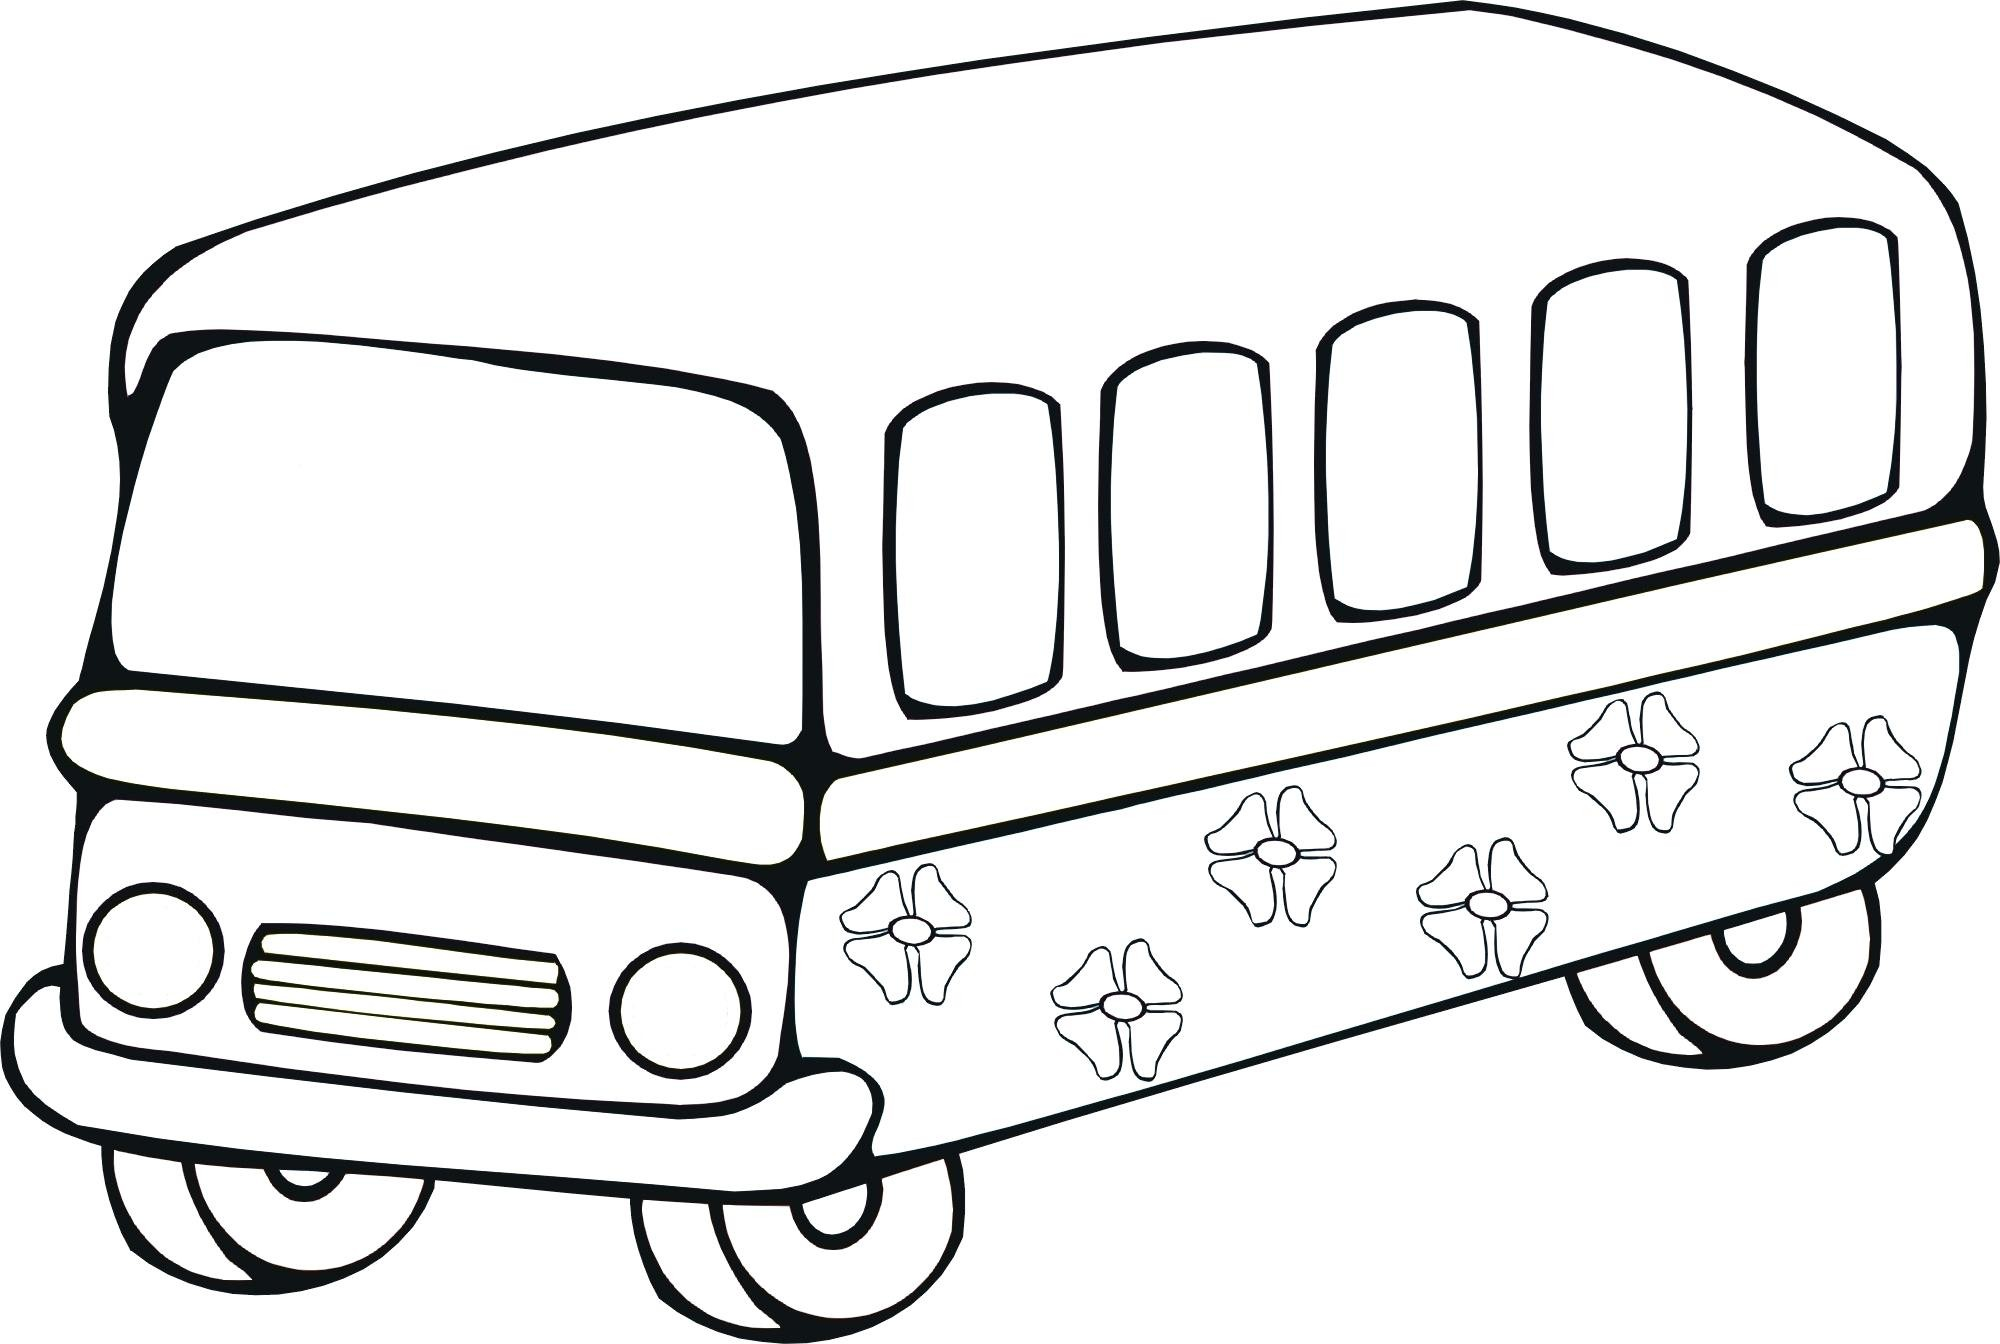 2000x1344 Toy Car Coloring Pages Fresh Coloring Stunning Toy Coloring Pages